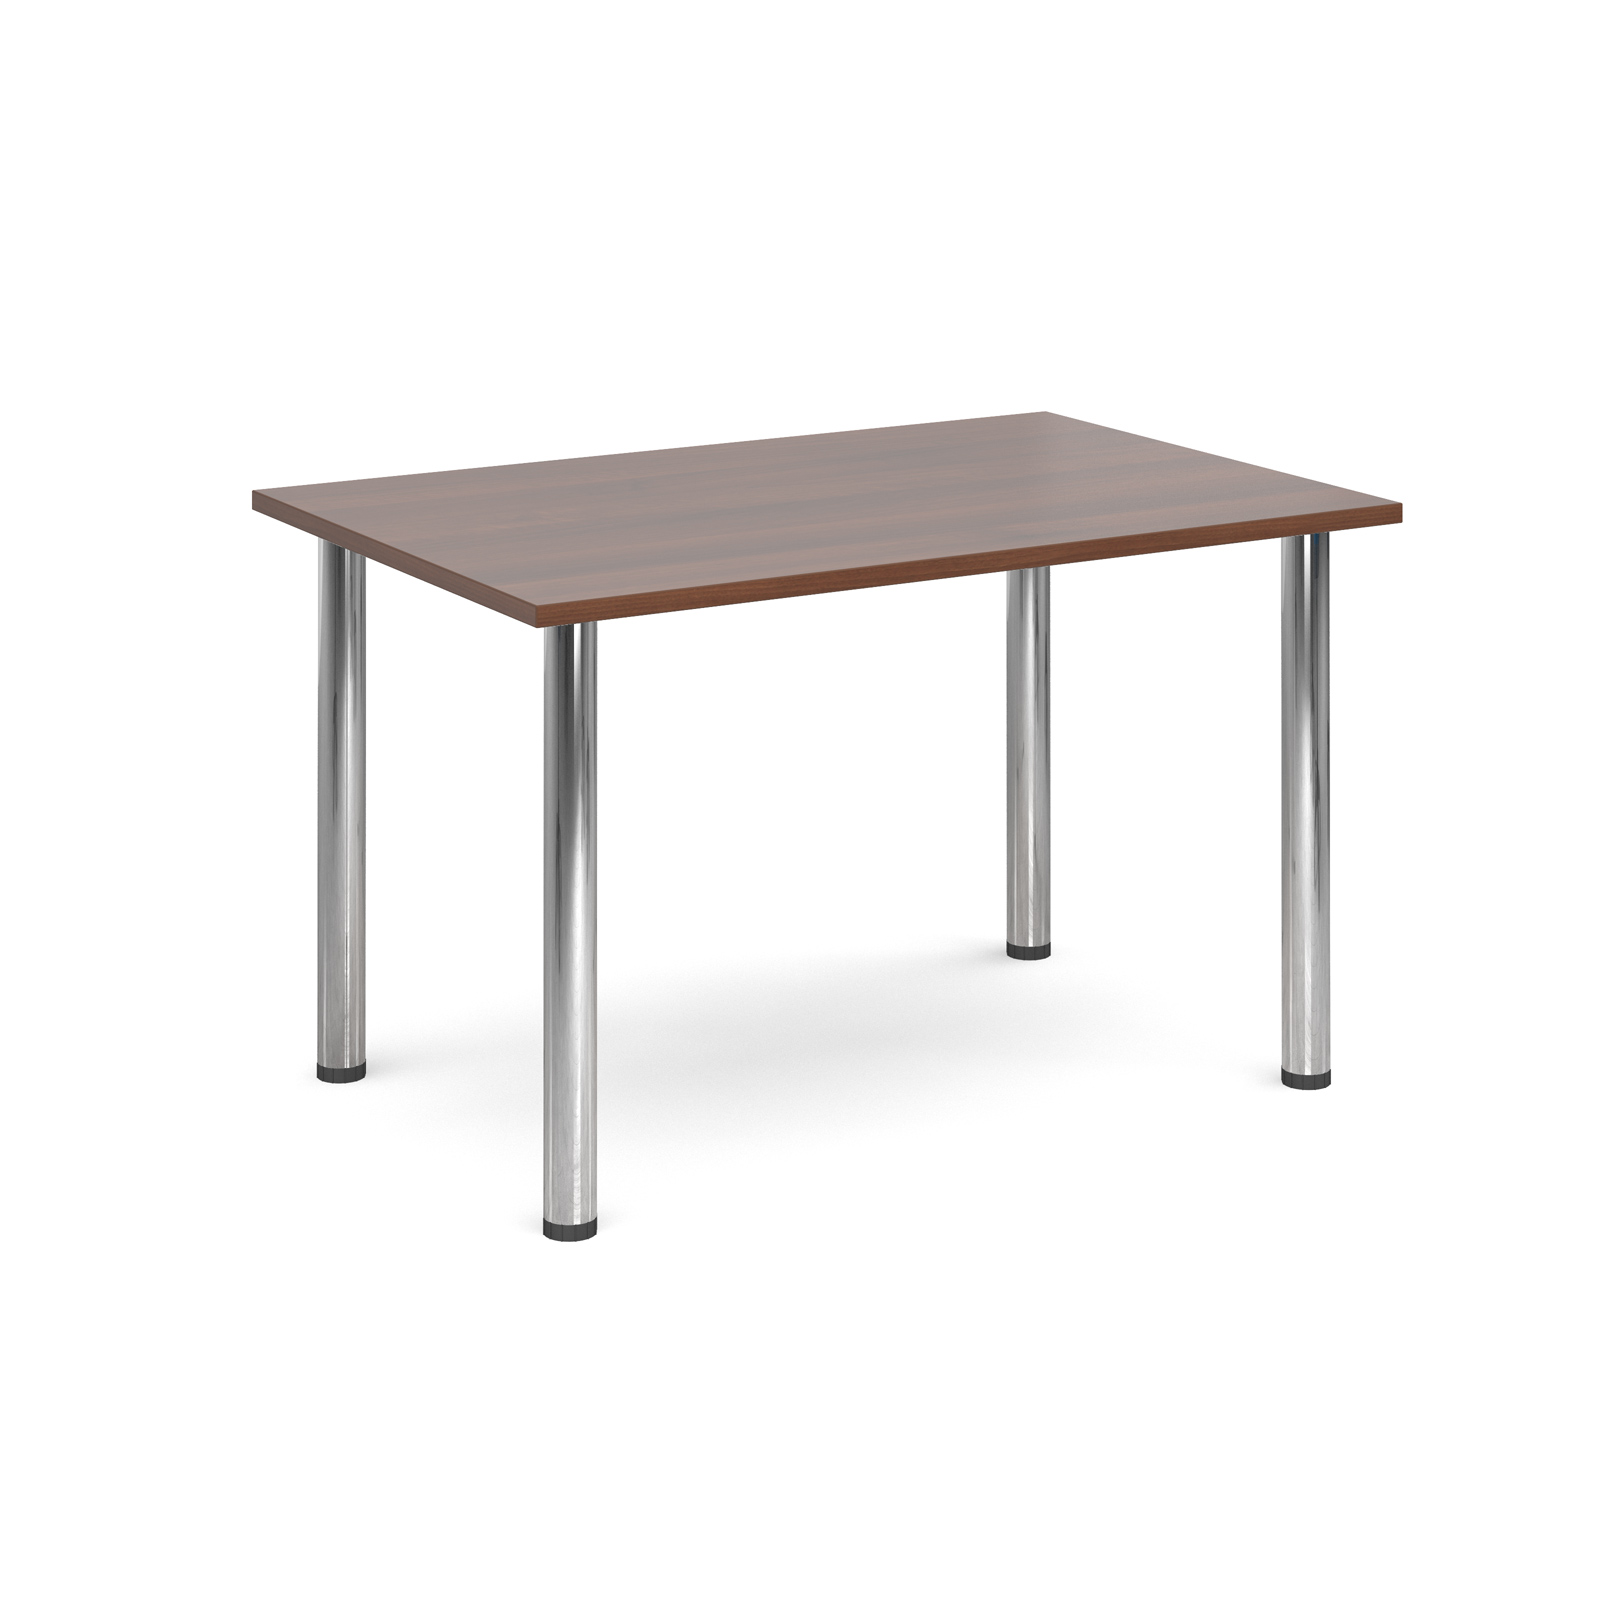 1300 Flexi table Chrome radial Legs-Walnut